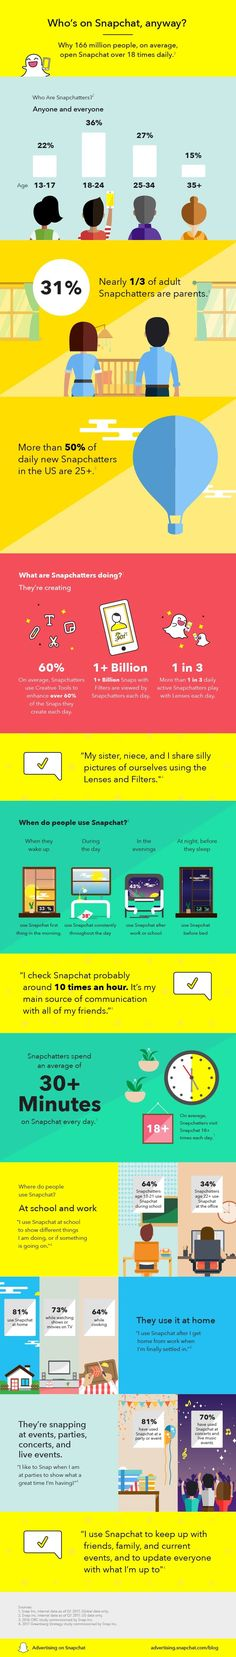 Who's on Snapchat, anyway? - #infographic